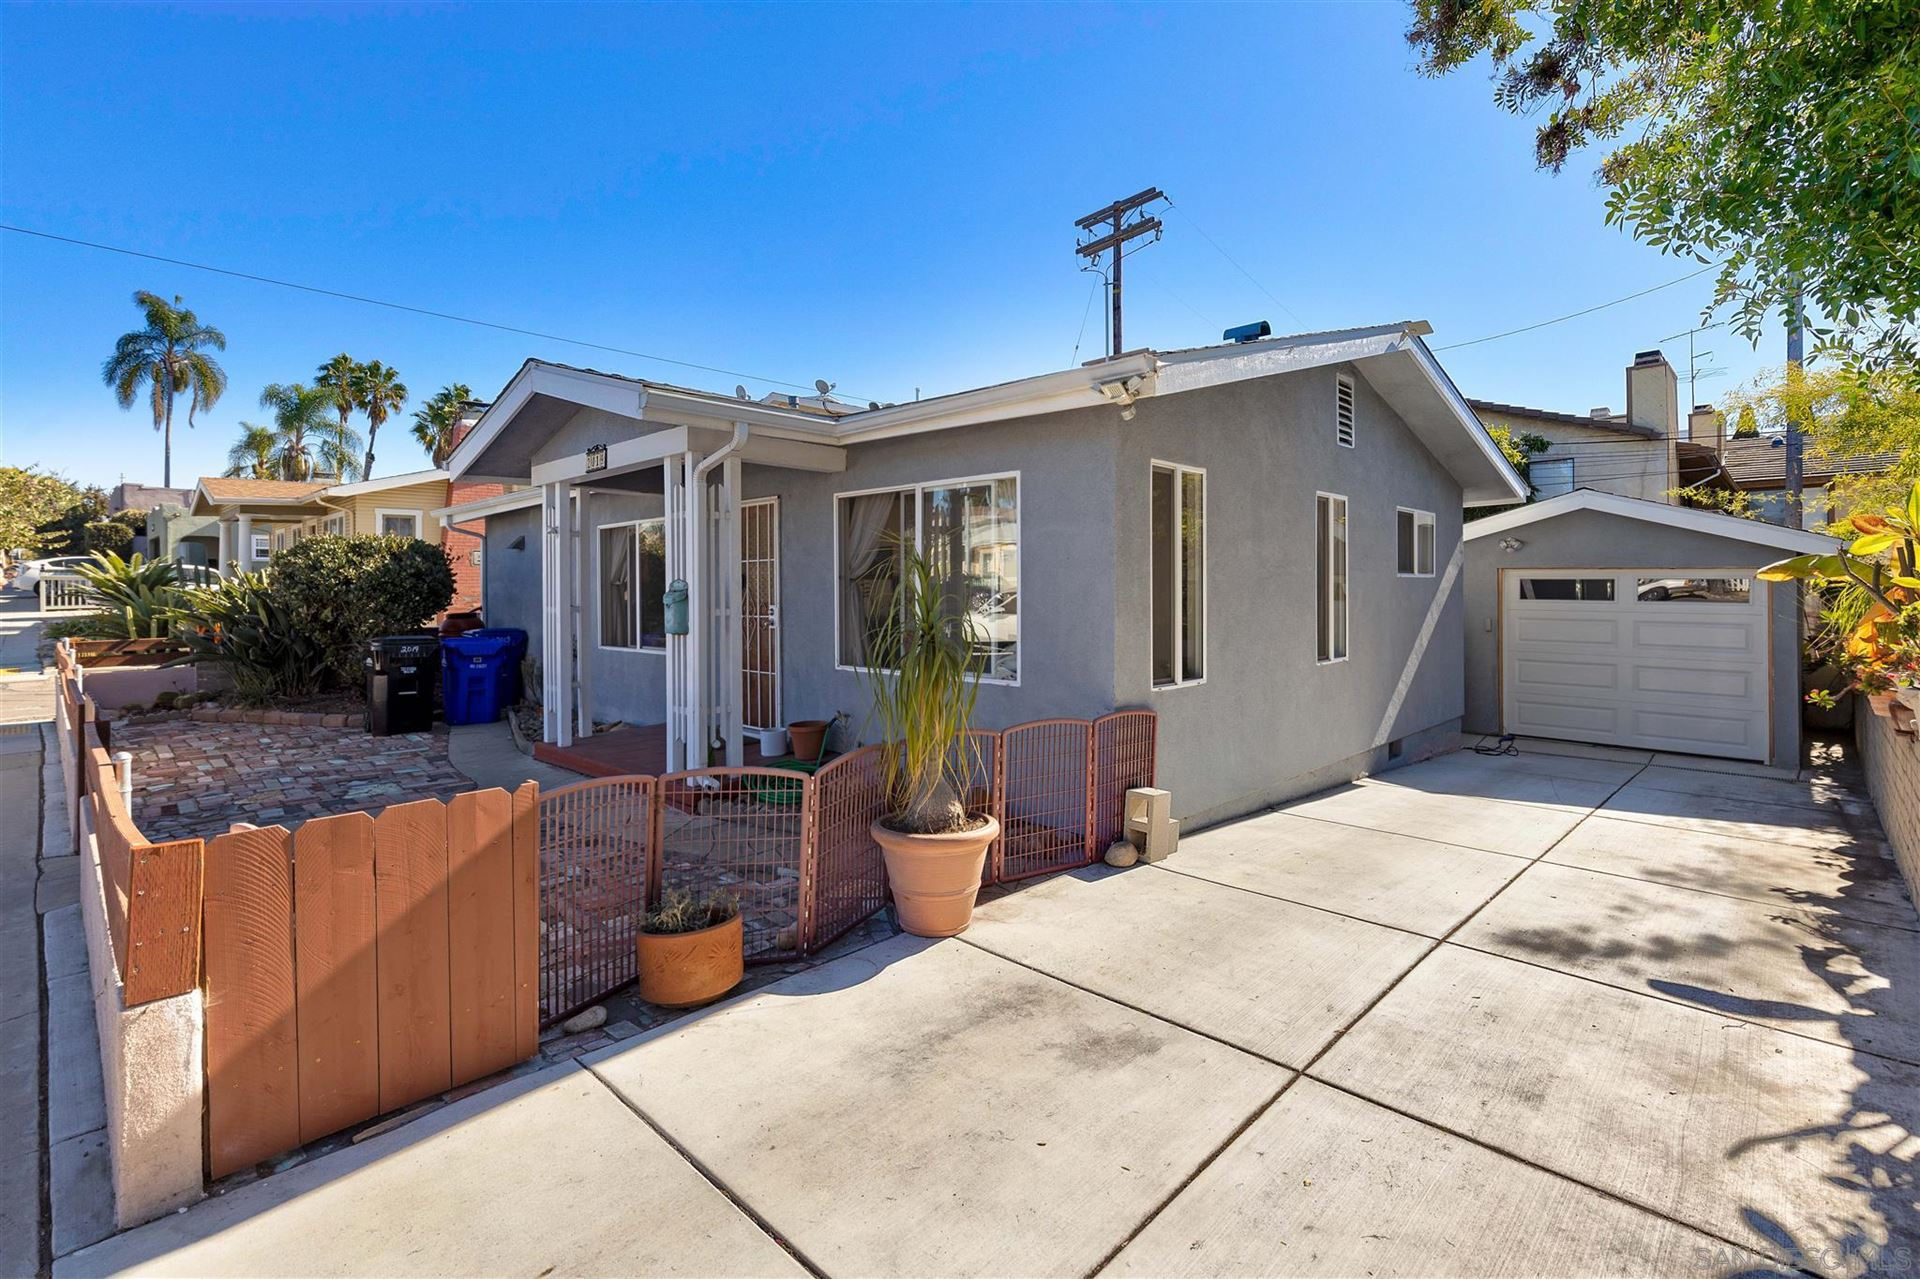 Photo for 2019 Meade Avenue, San Diego, CA 92116 (MLS # 200053687)